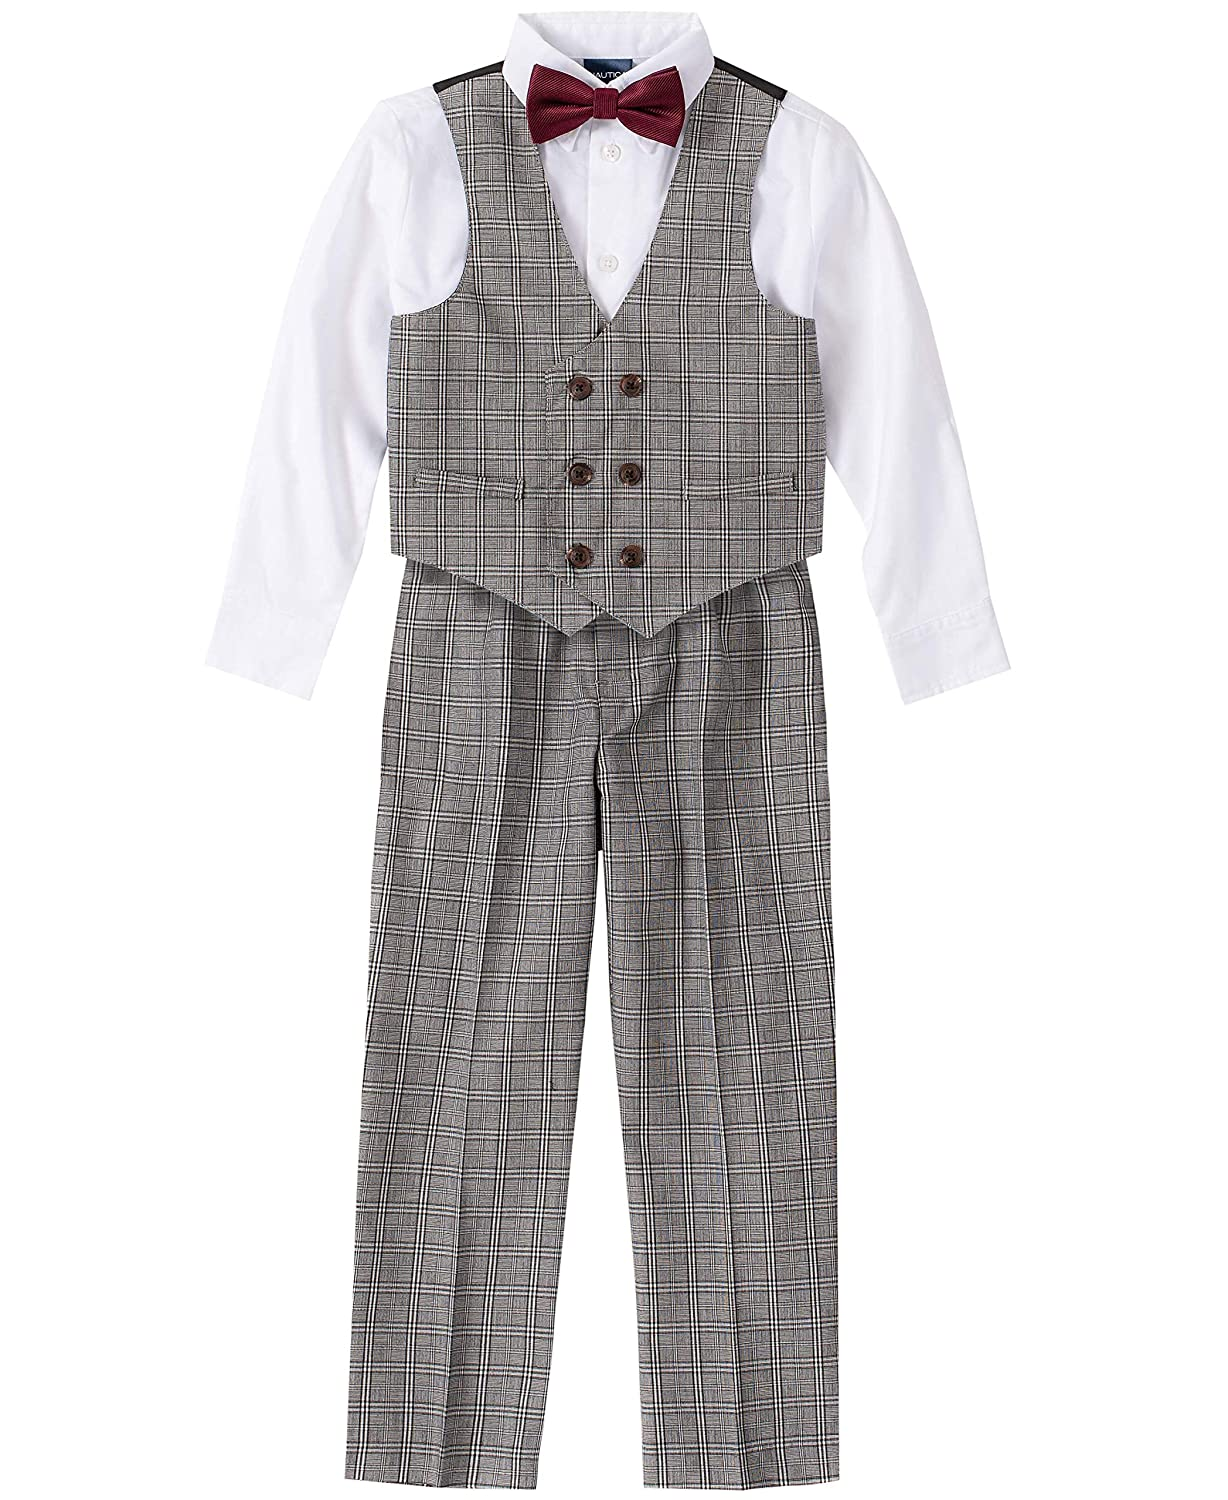 1920s Children Fashions: Girls, Boys, Baby Costumes Nautica Boys 4-Piece Vest Set with Dress Shirt Bow Tie Vest and Pants $20.97 AT vintagedancer.com